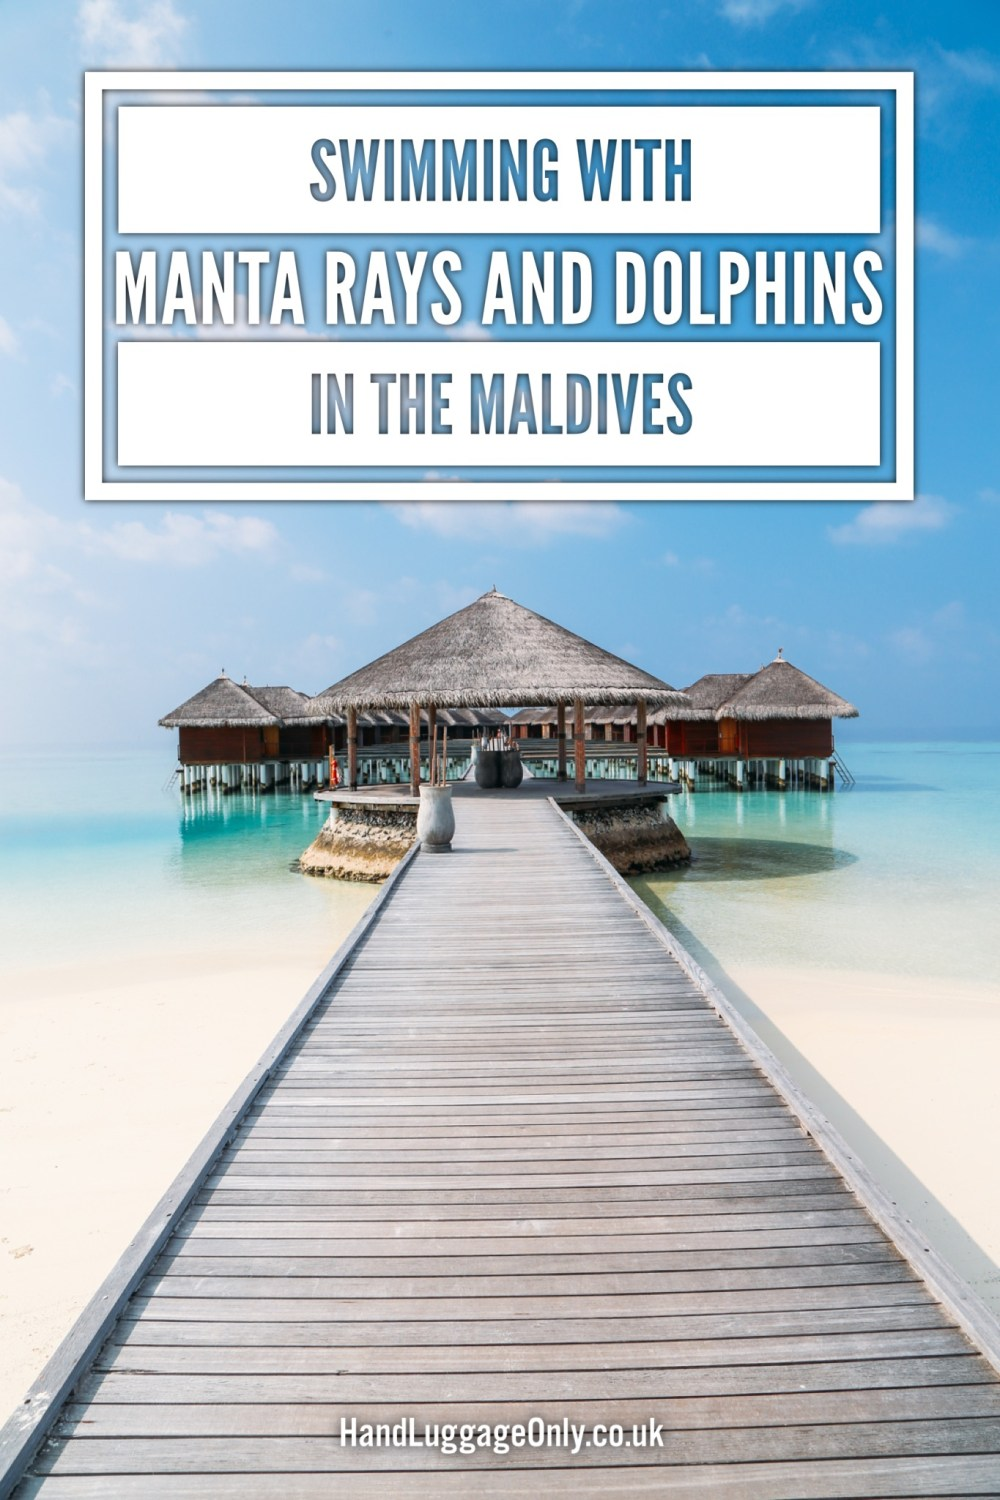 Swimming With Manta Rays And Dolphins In The Maldives (2)